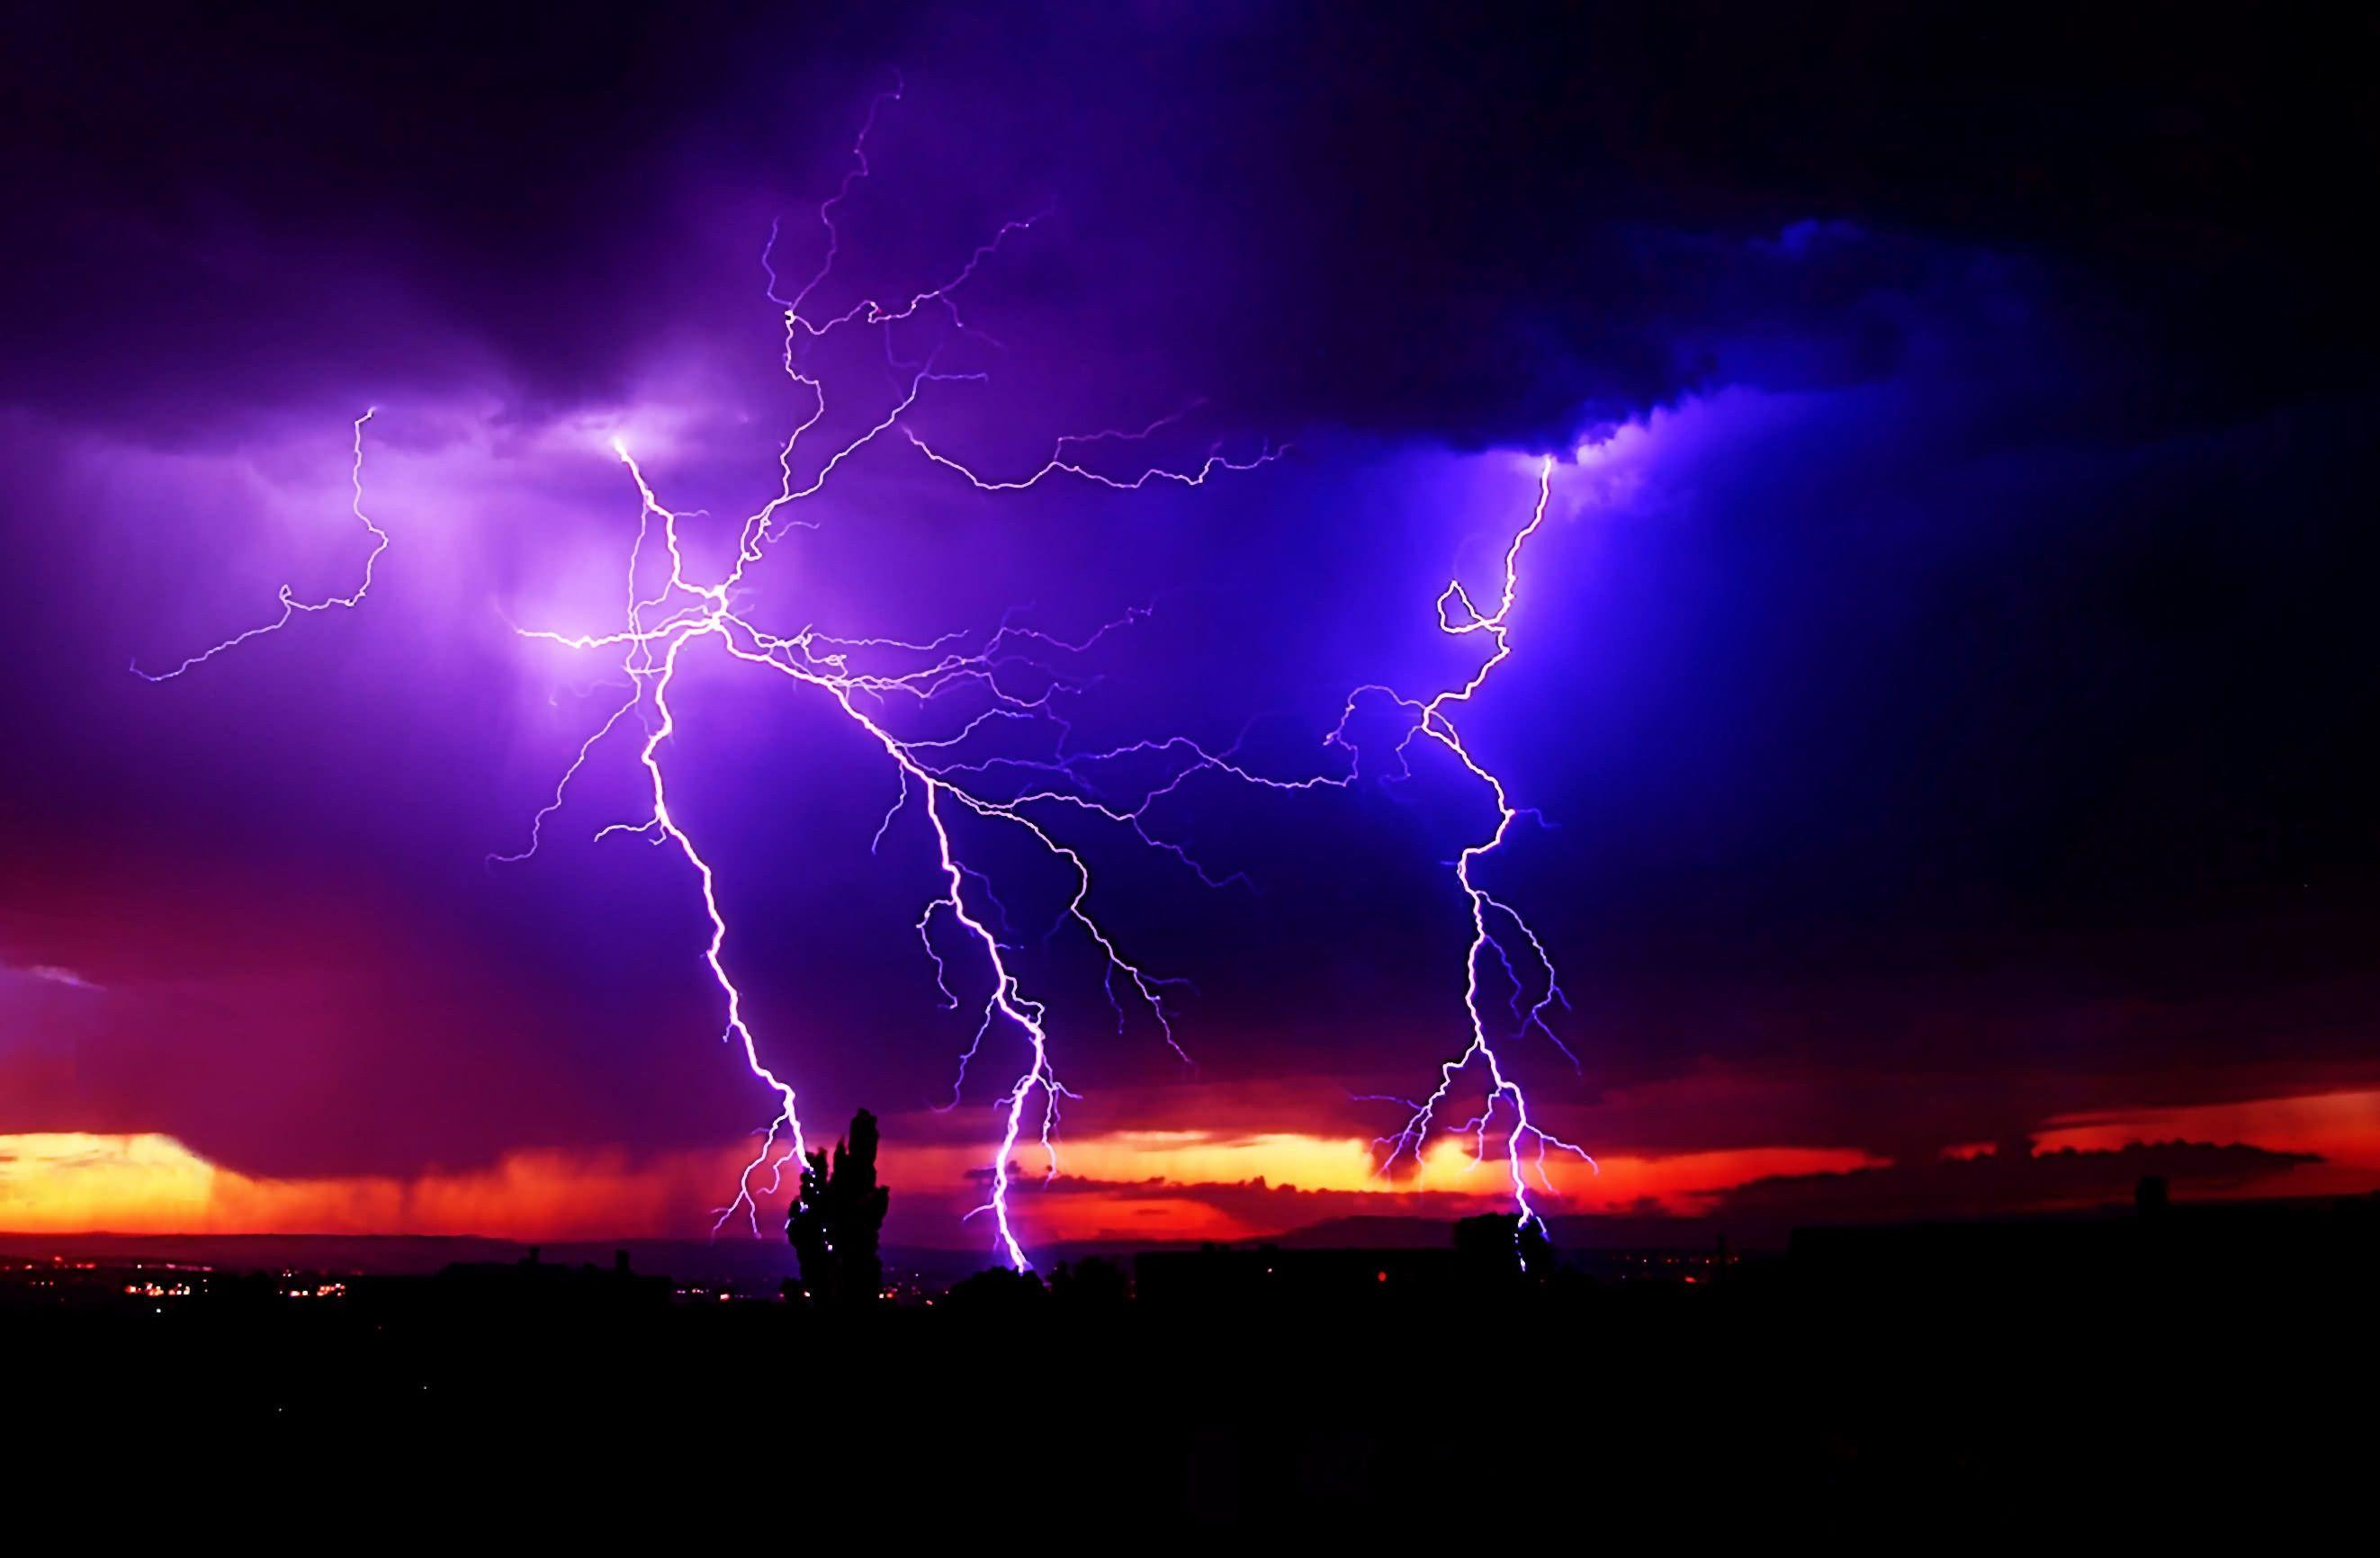 Hd wallpaper upload - Free Hd Lightning Pictures Wallpapers